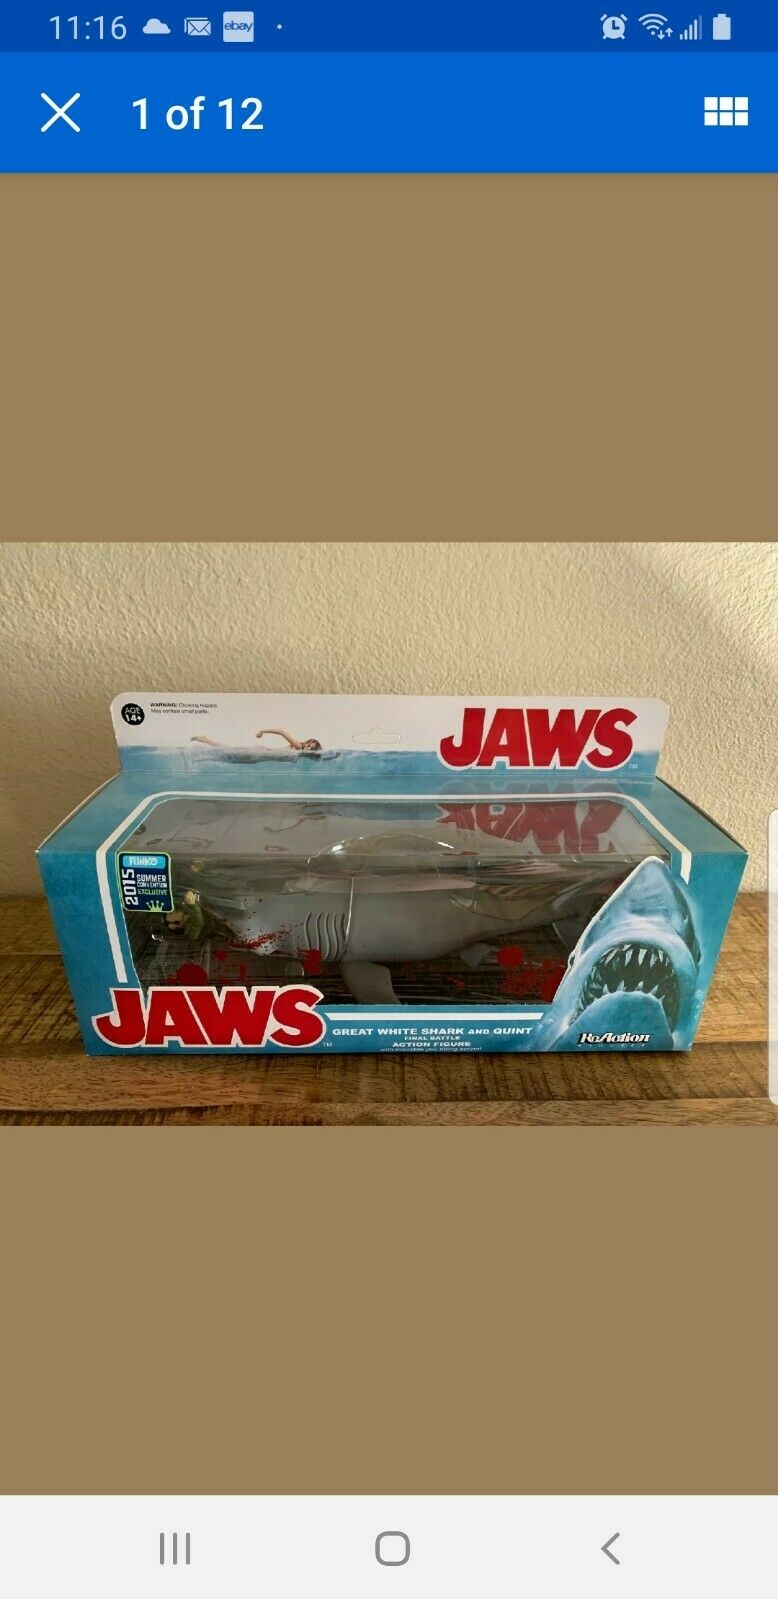 JAWS Funko Reaction Great Weiß Shark & Quint Bloody Convention Exclusive 2015